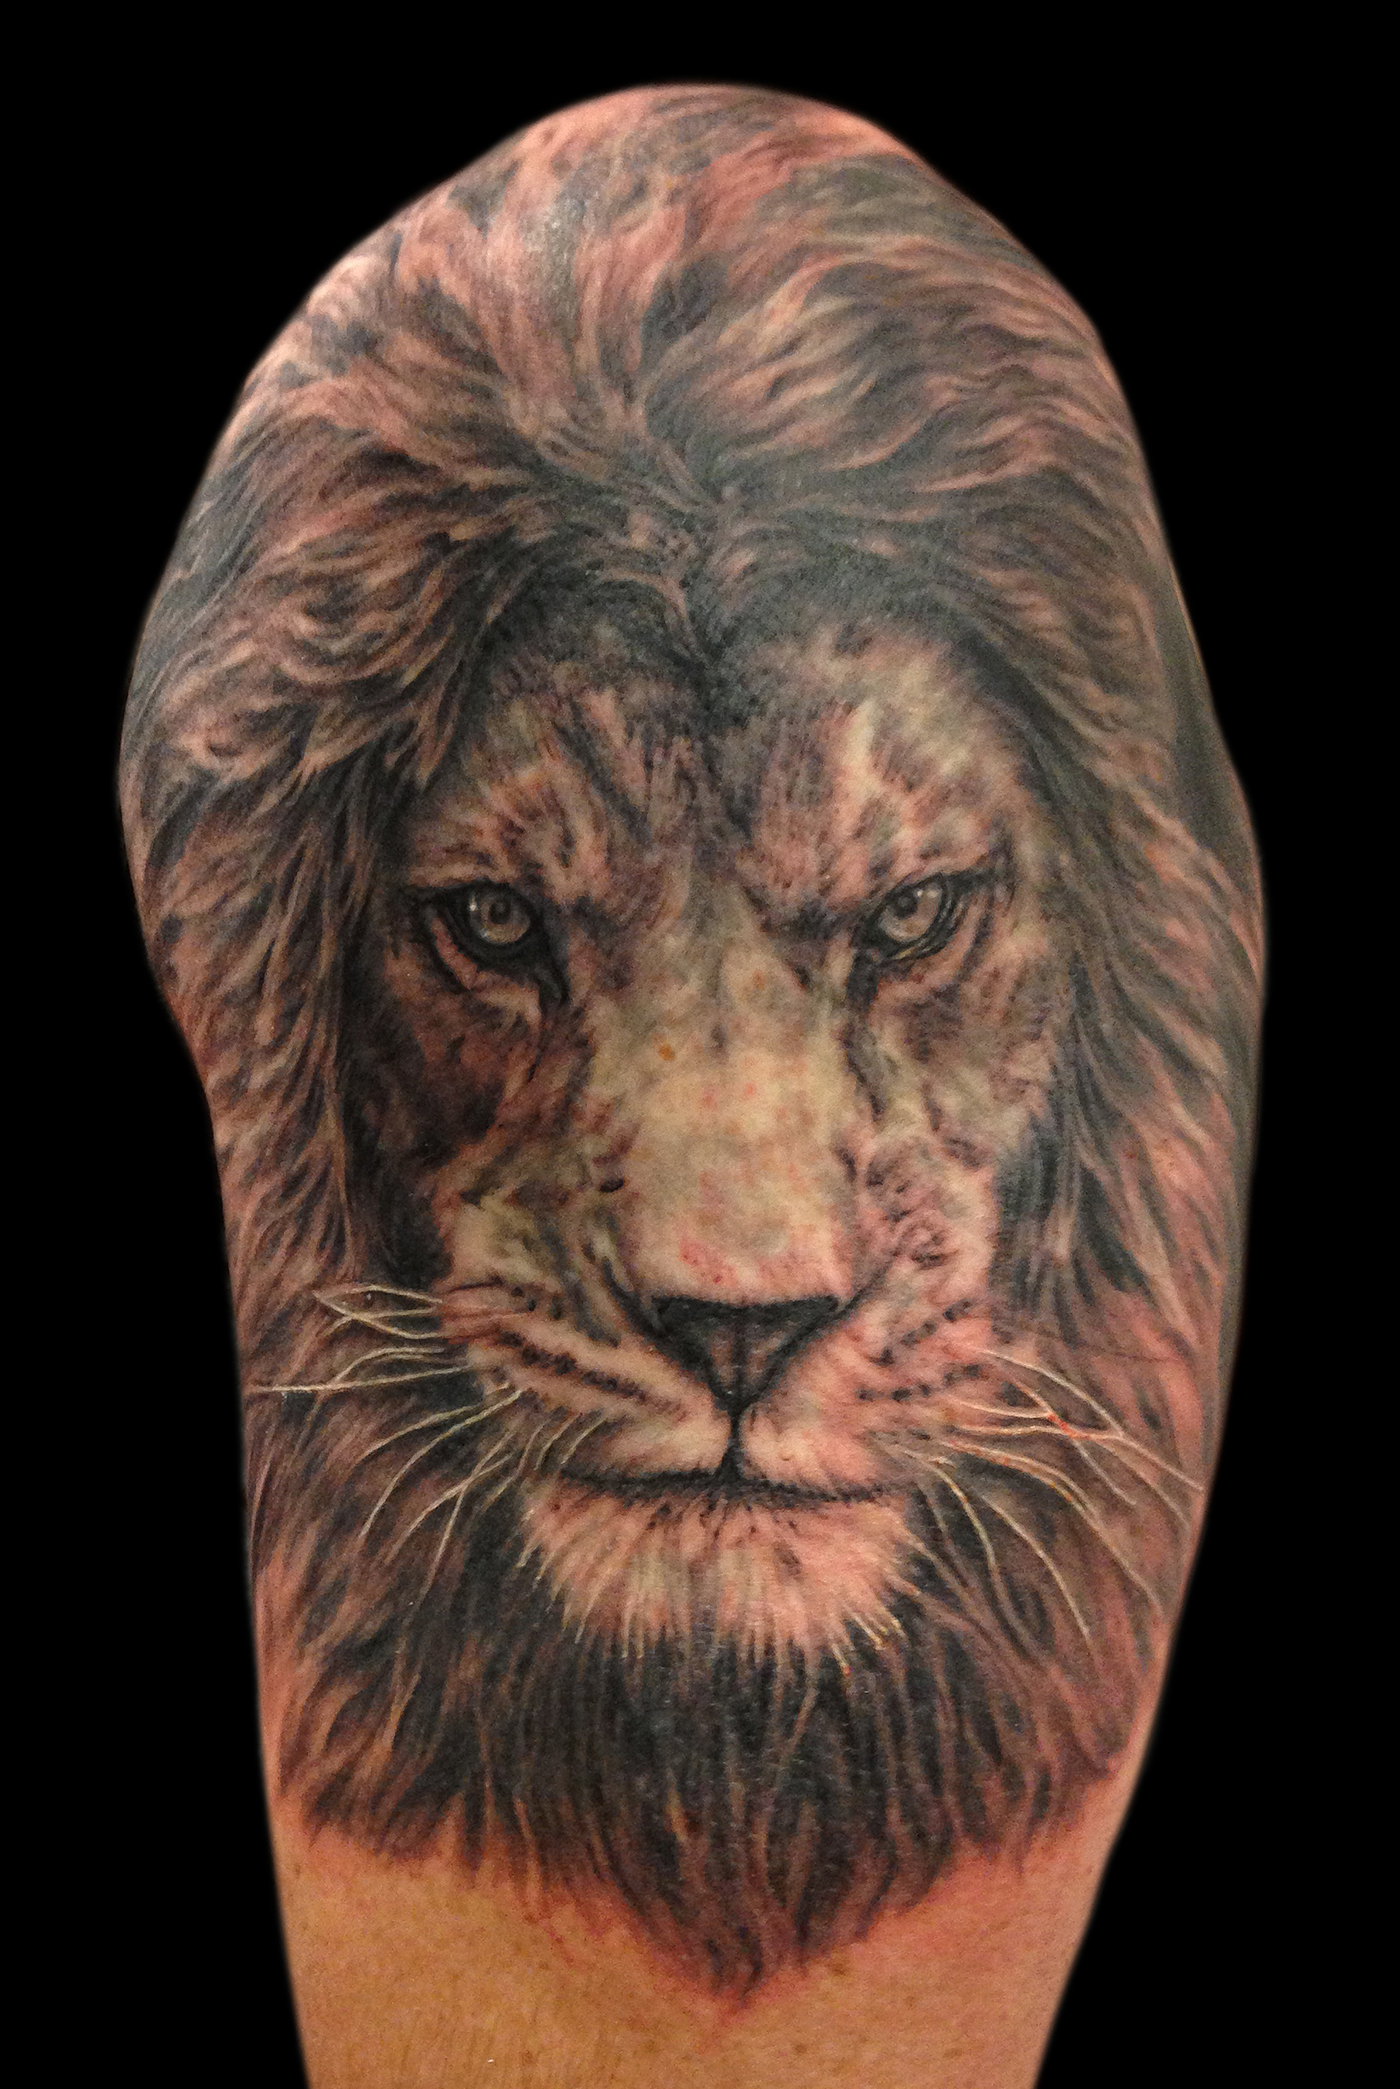 Black and Grey Realistic Lion Portrait Tattoo